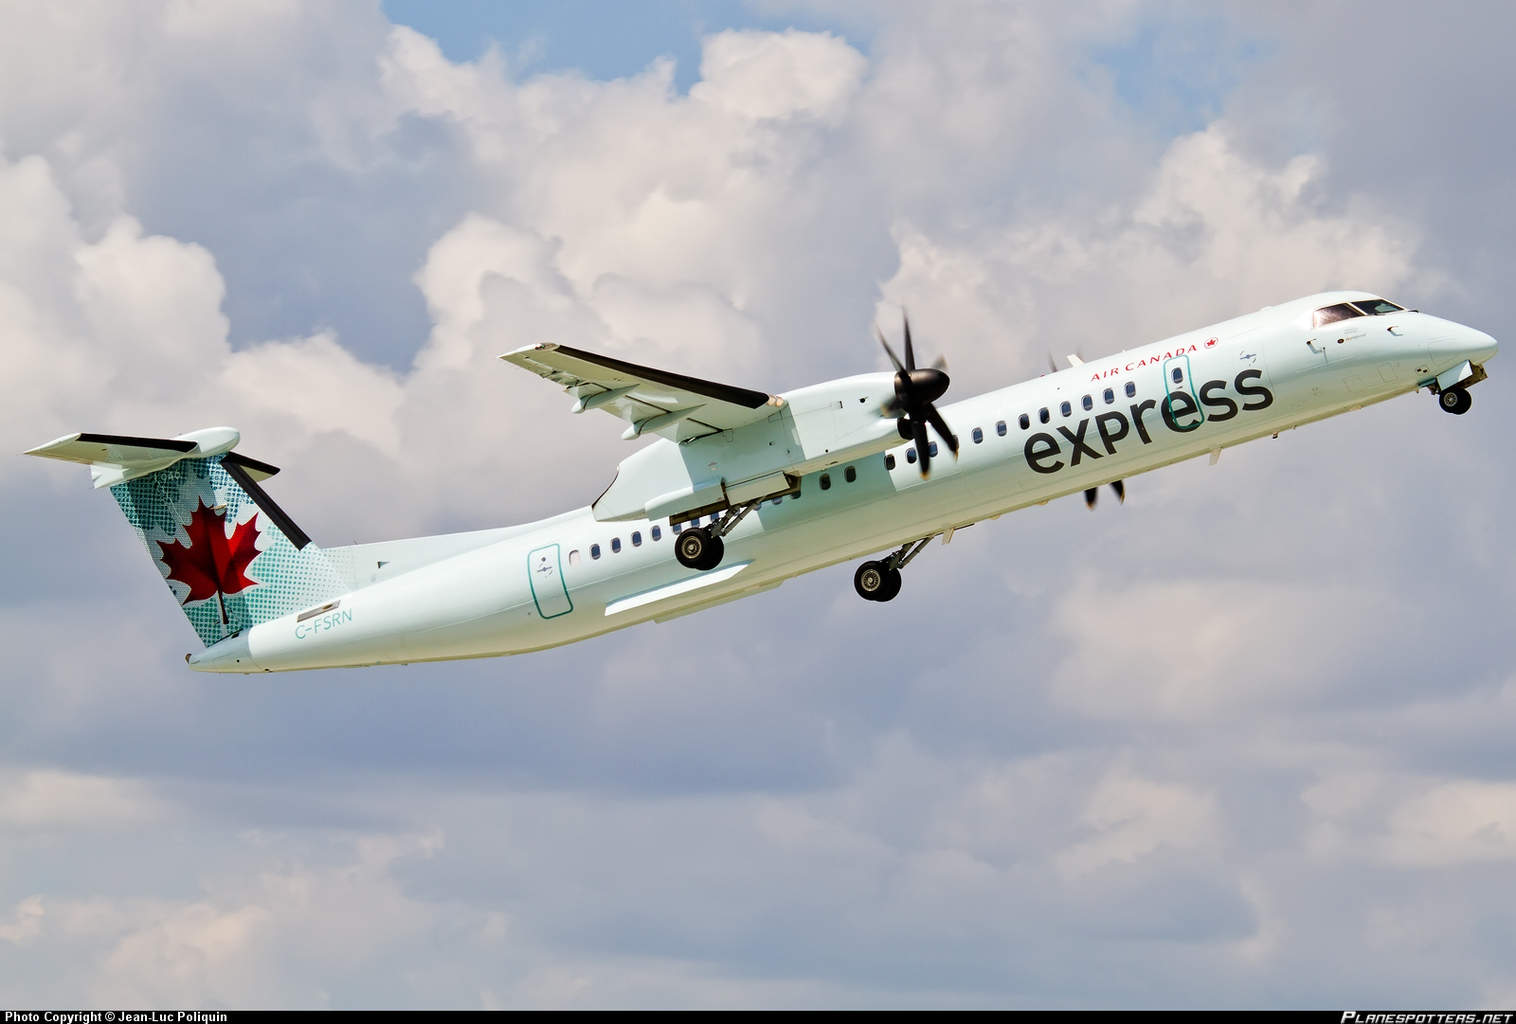 More Q400 routes for Air Canada Express